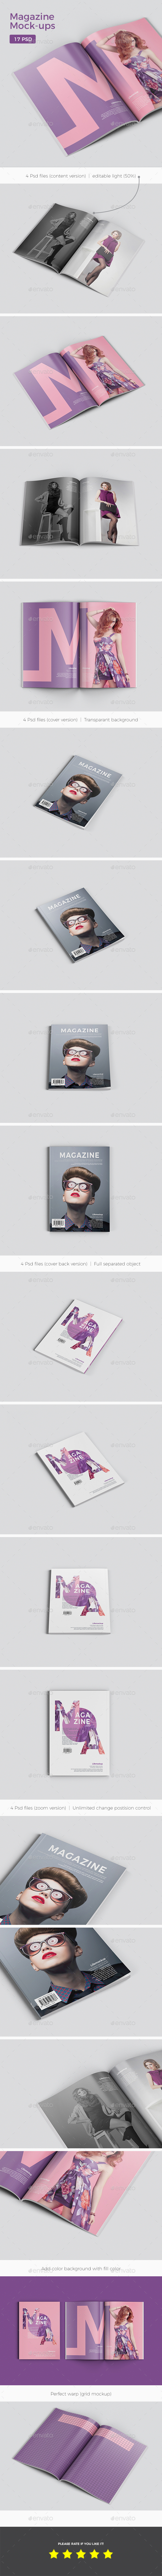 GraphicRiver Magazine Mockup 21009095